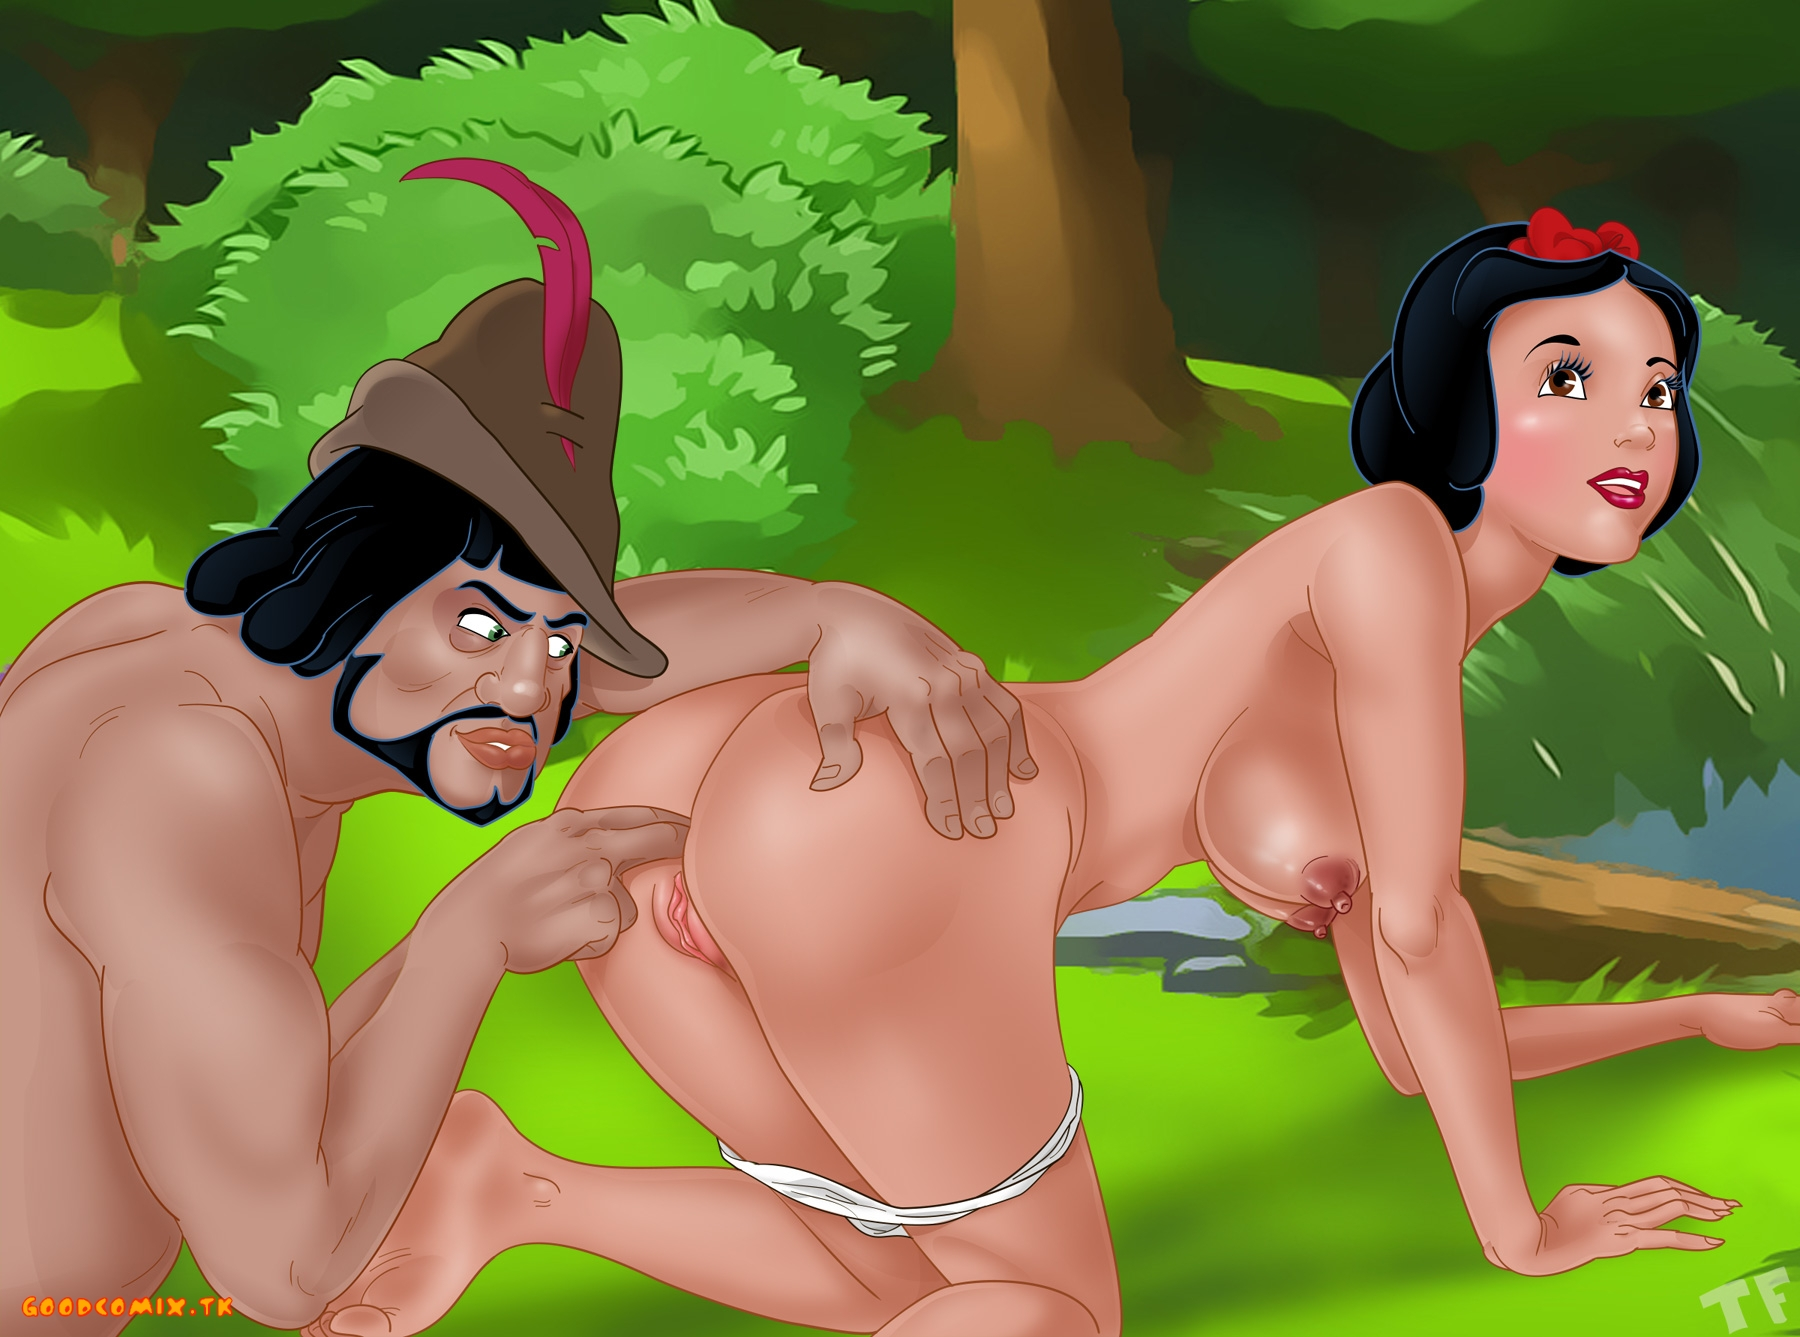 Goodcomix Snow White - [TitFlaviy] - Snow White and The Huntsman